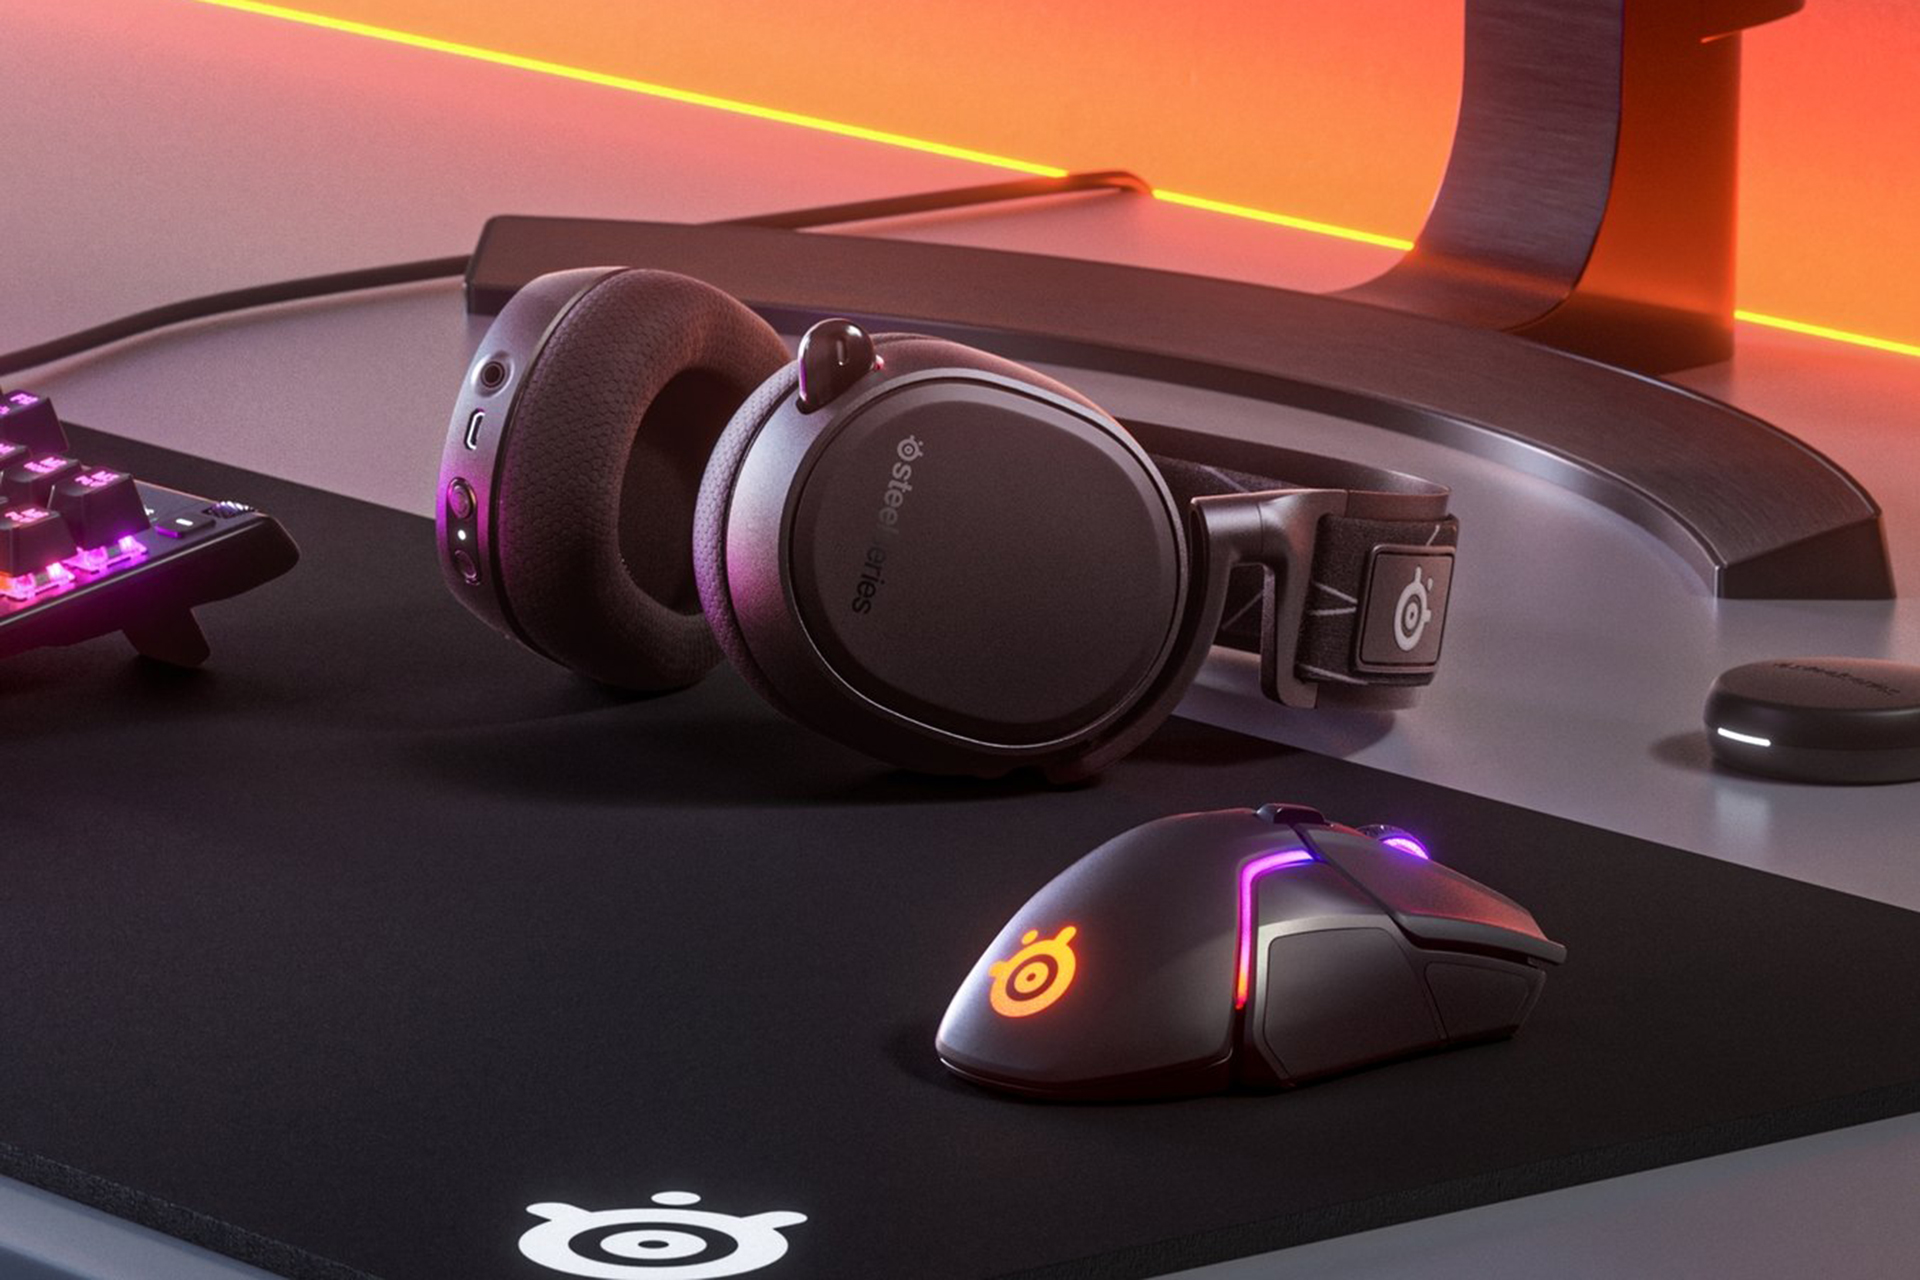 SteelSeries Arctis 9 headset with mouse and gamepad